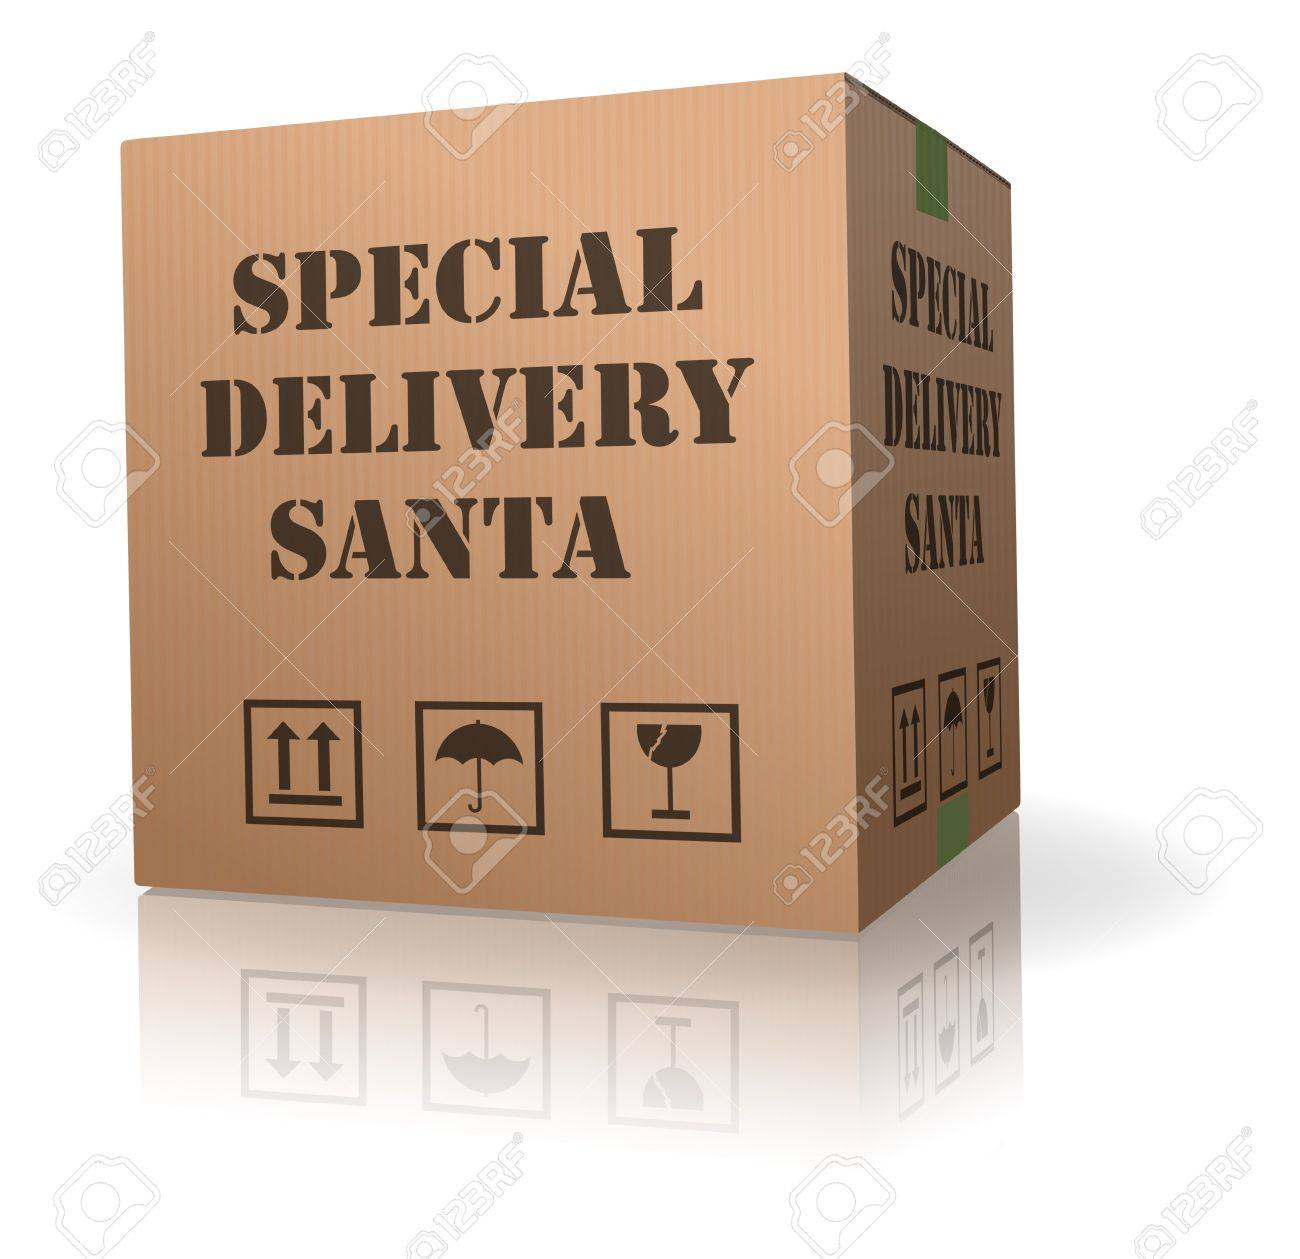 santa package special delivery for chistmas present of gift Stock Photo - 8013046